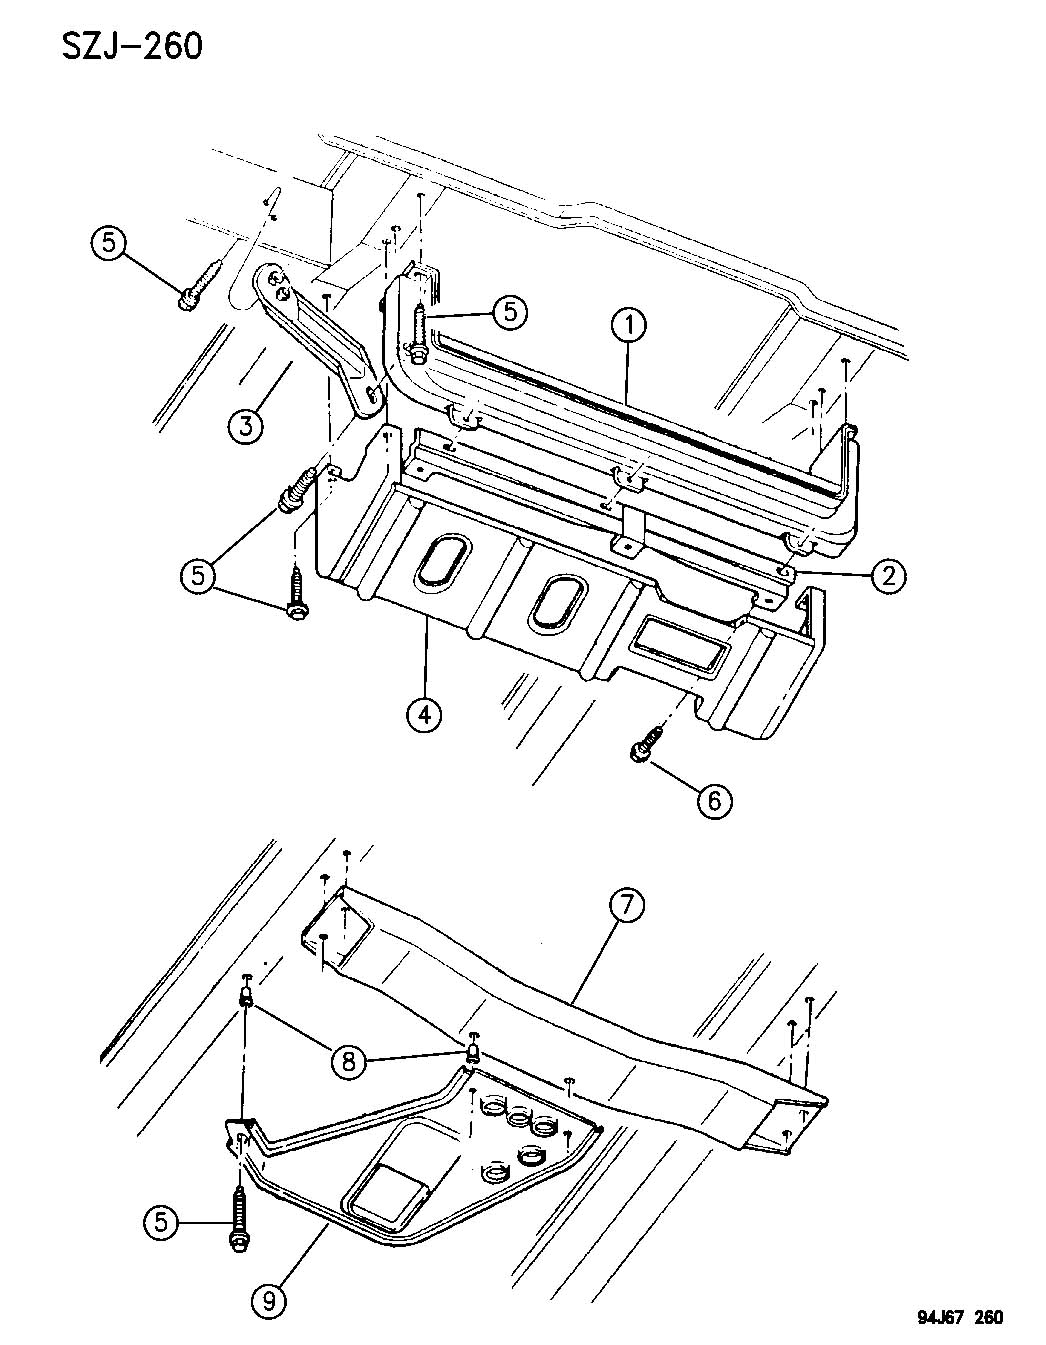 FRONT END SKID PLATES GRAND CHEROKEE, ZJ